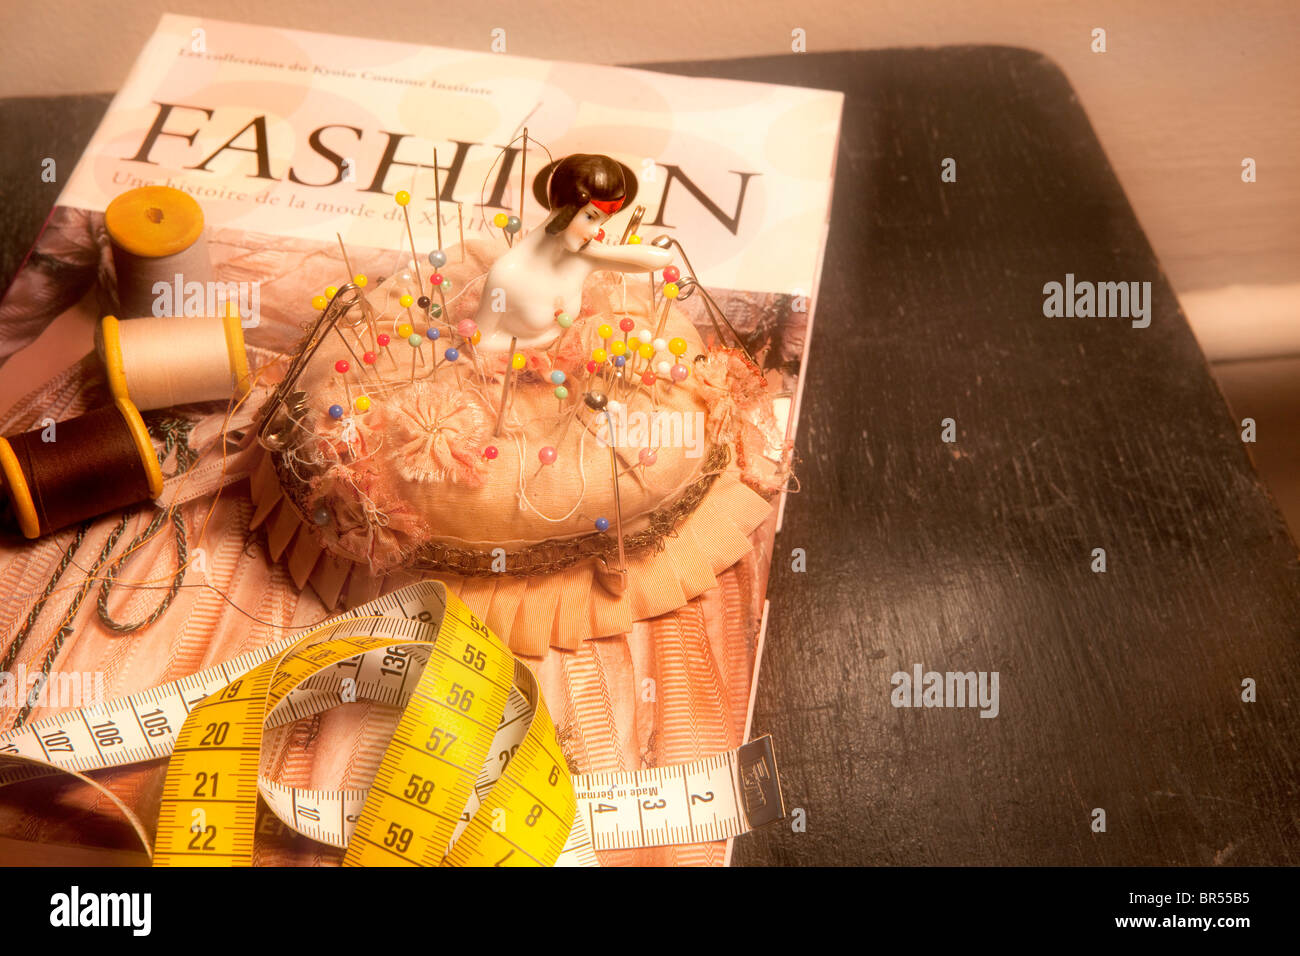 Fashion book, thread and pincushion with pins - Stock Image